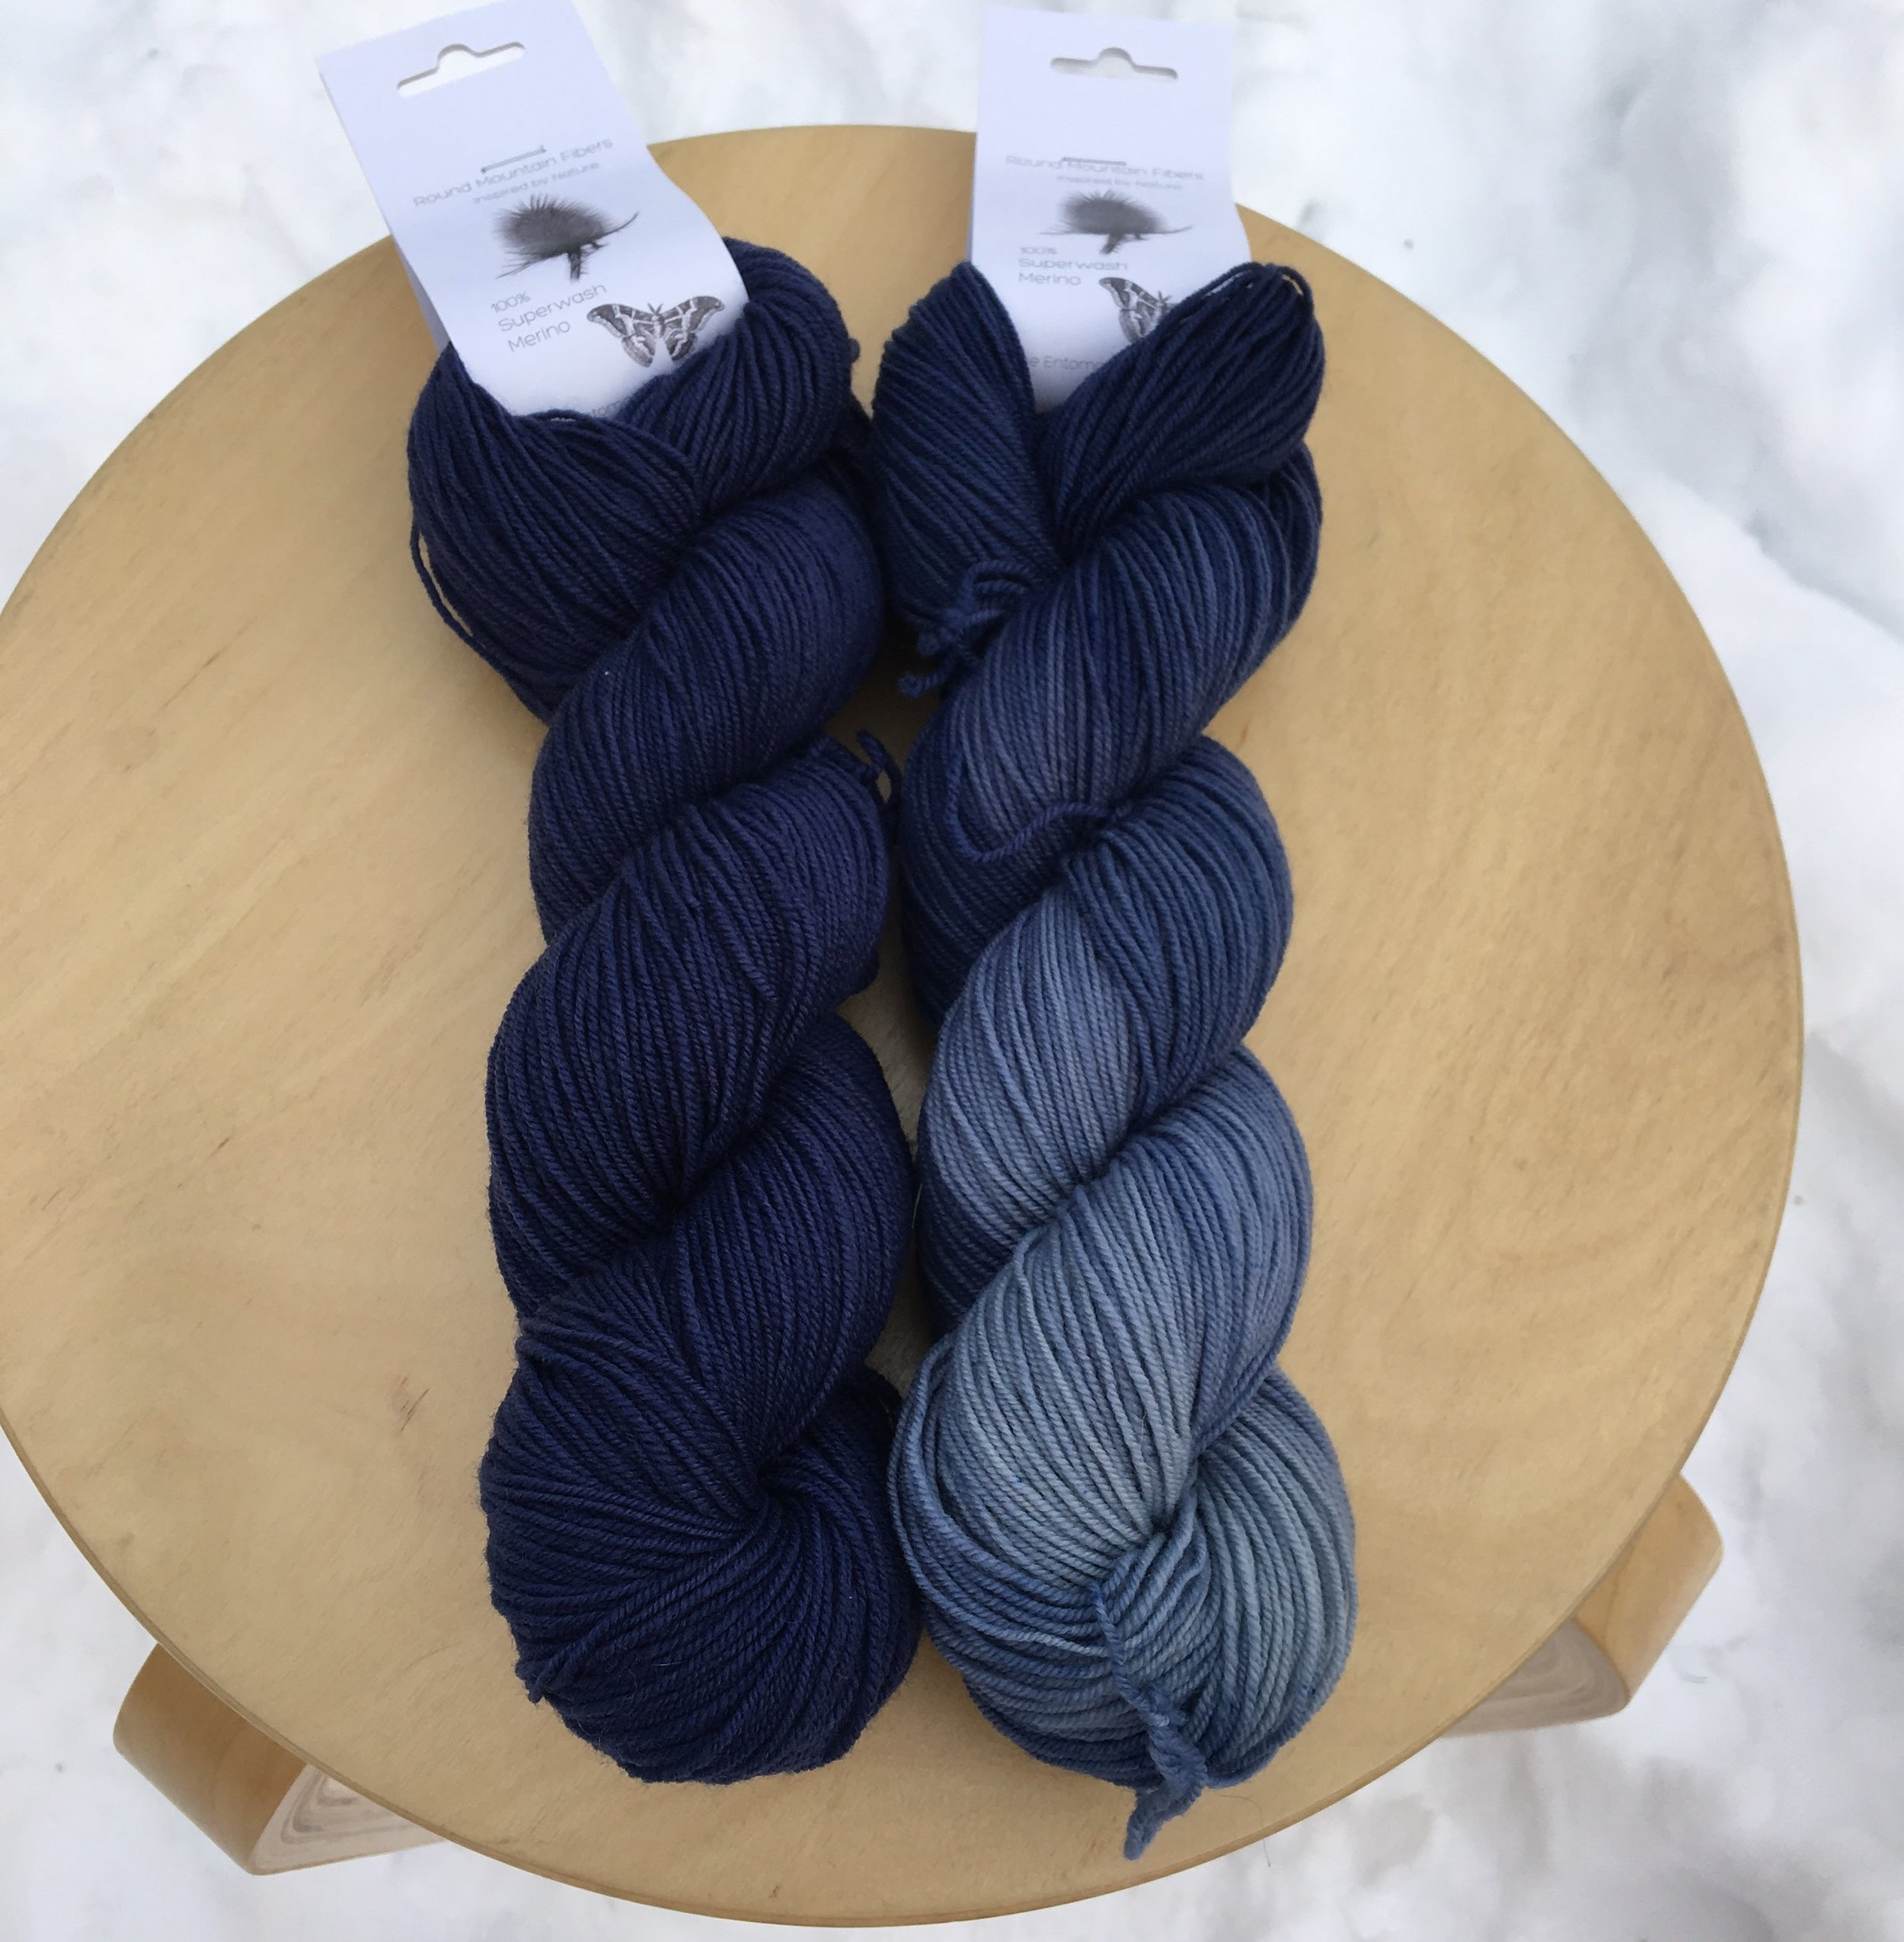 Dogbane Blue and Dogbane Blue Pooling Semisolid.